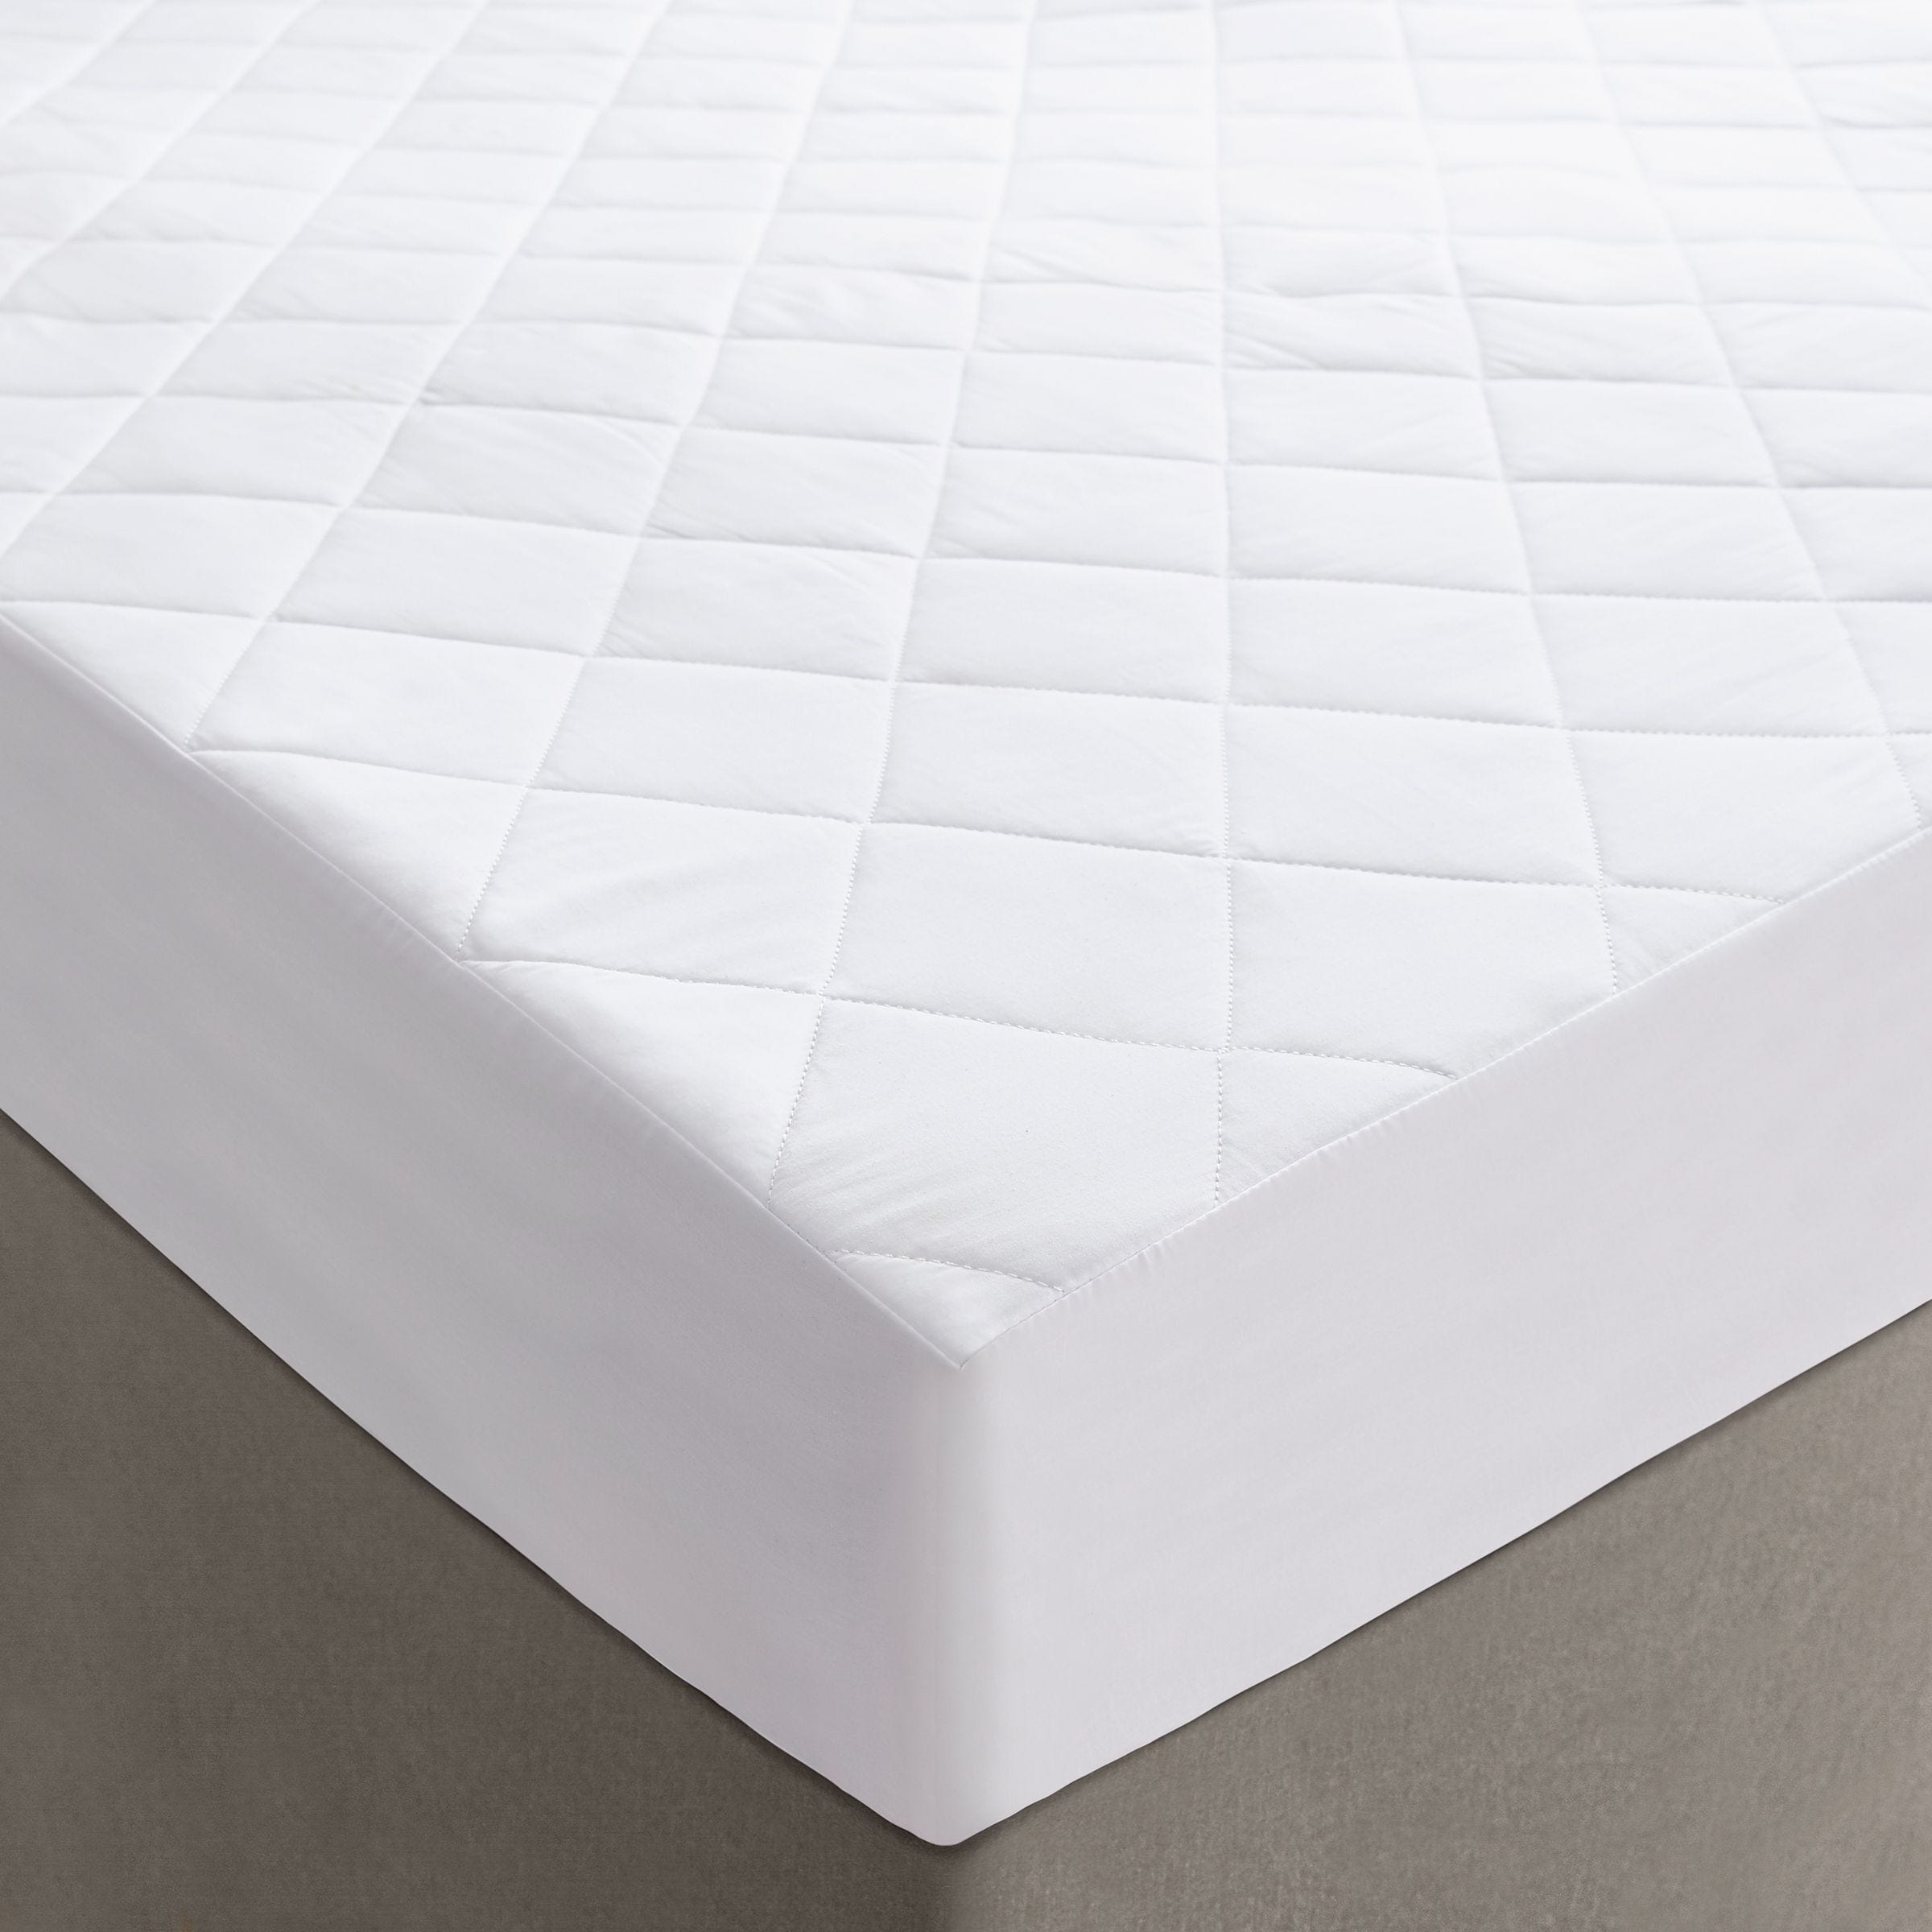 Luxury Quilted Mattress Protectors Bedeck Home